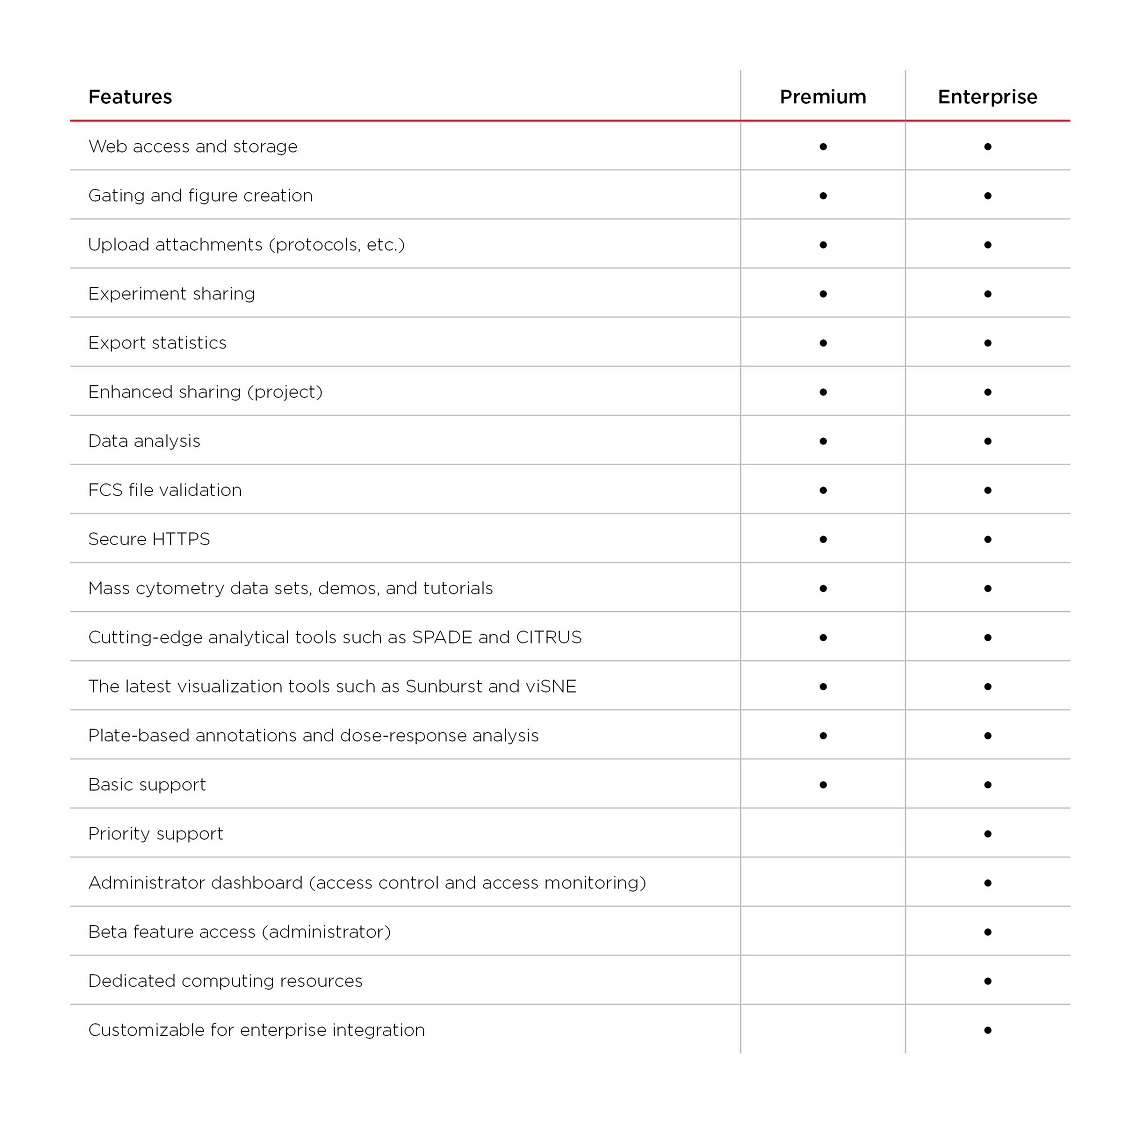 Table comparing features of Cytobank Premium and Enterprise licenses